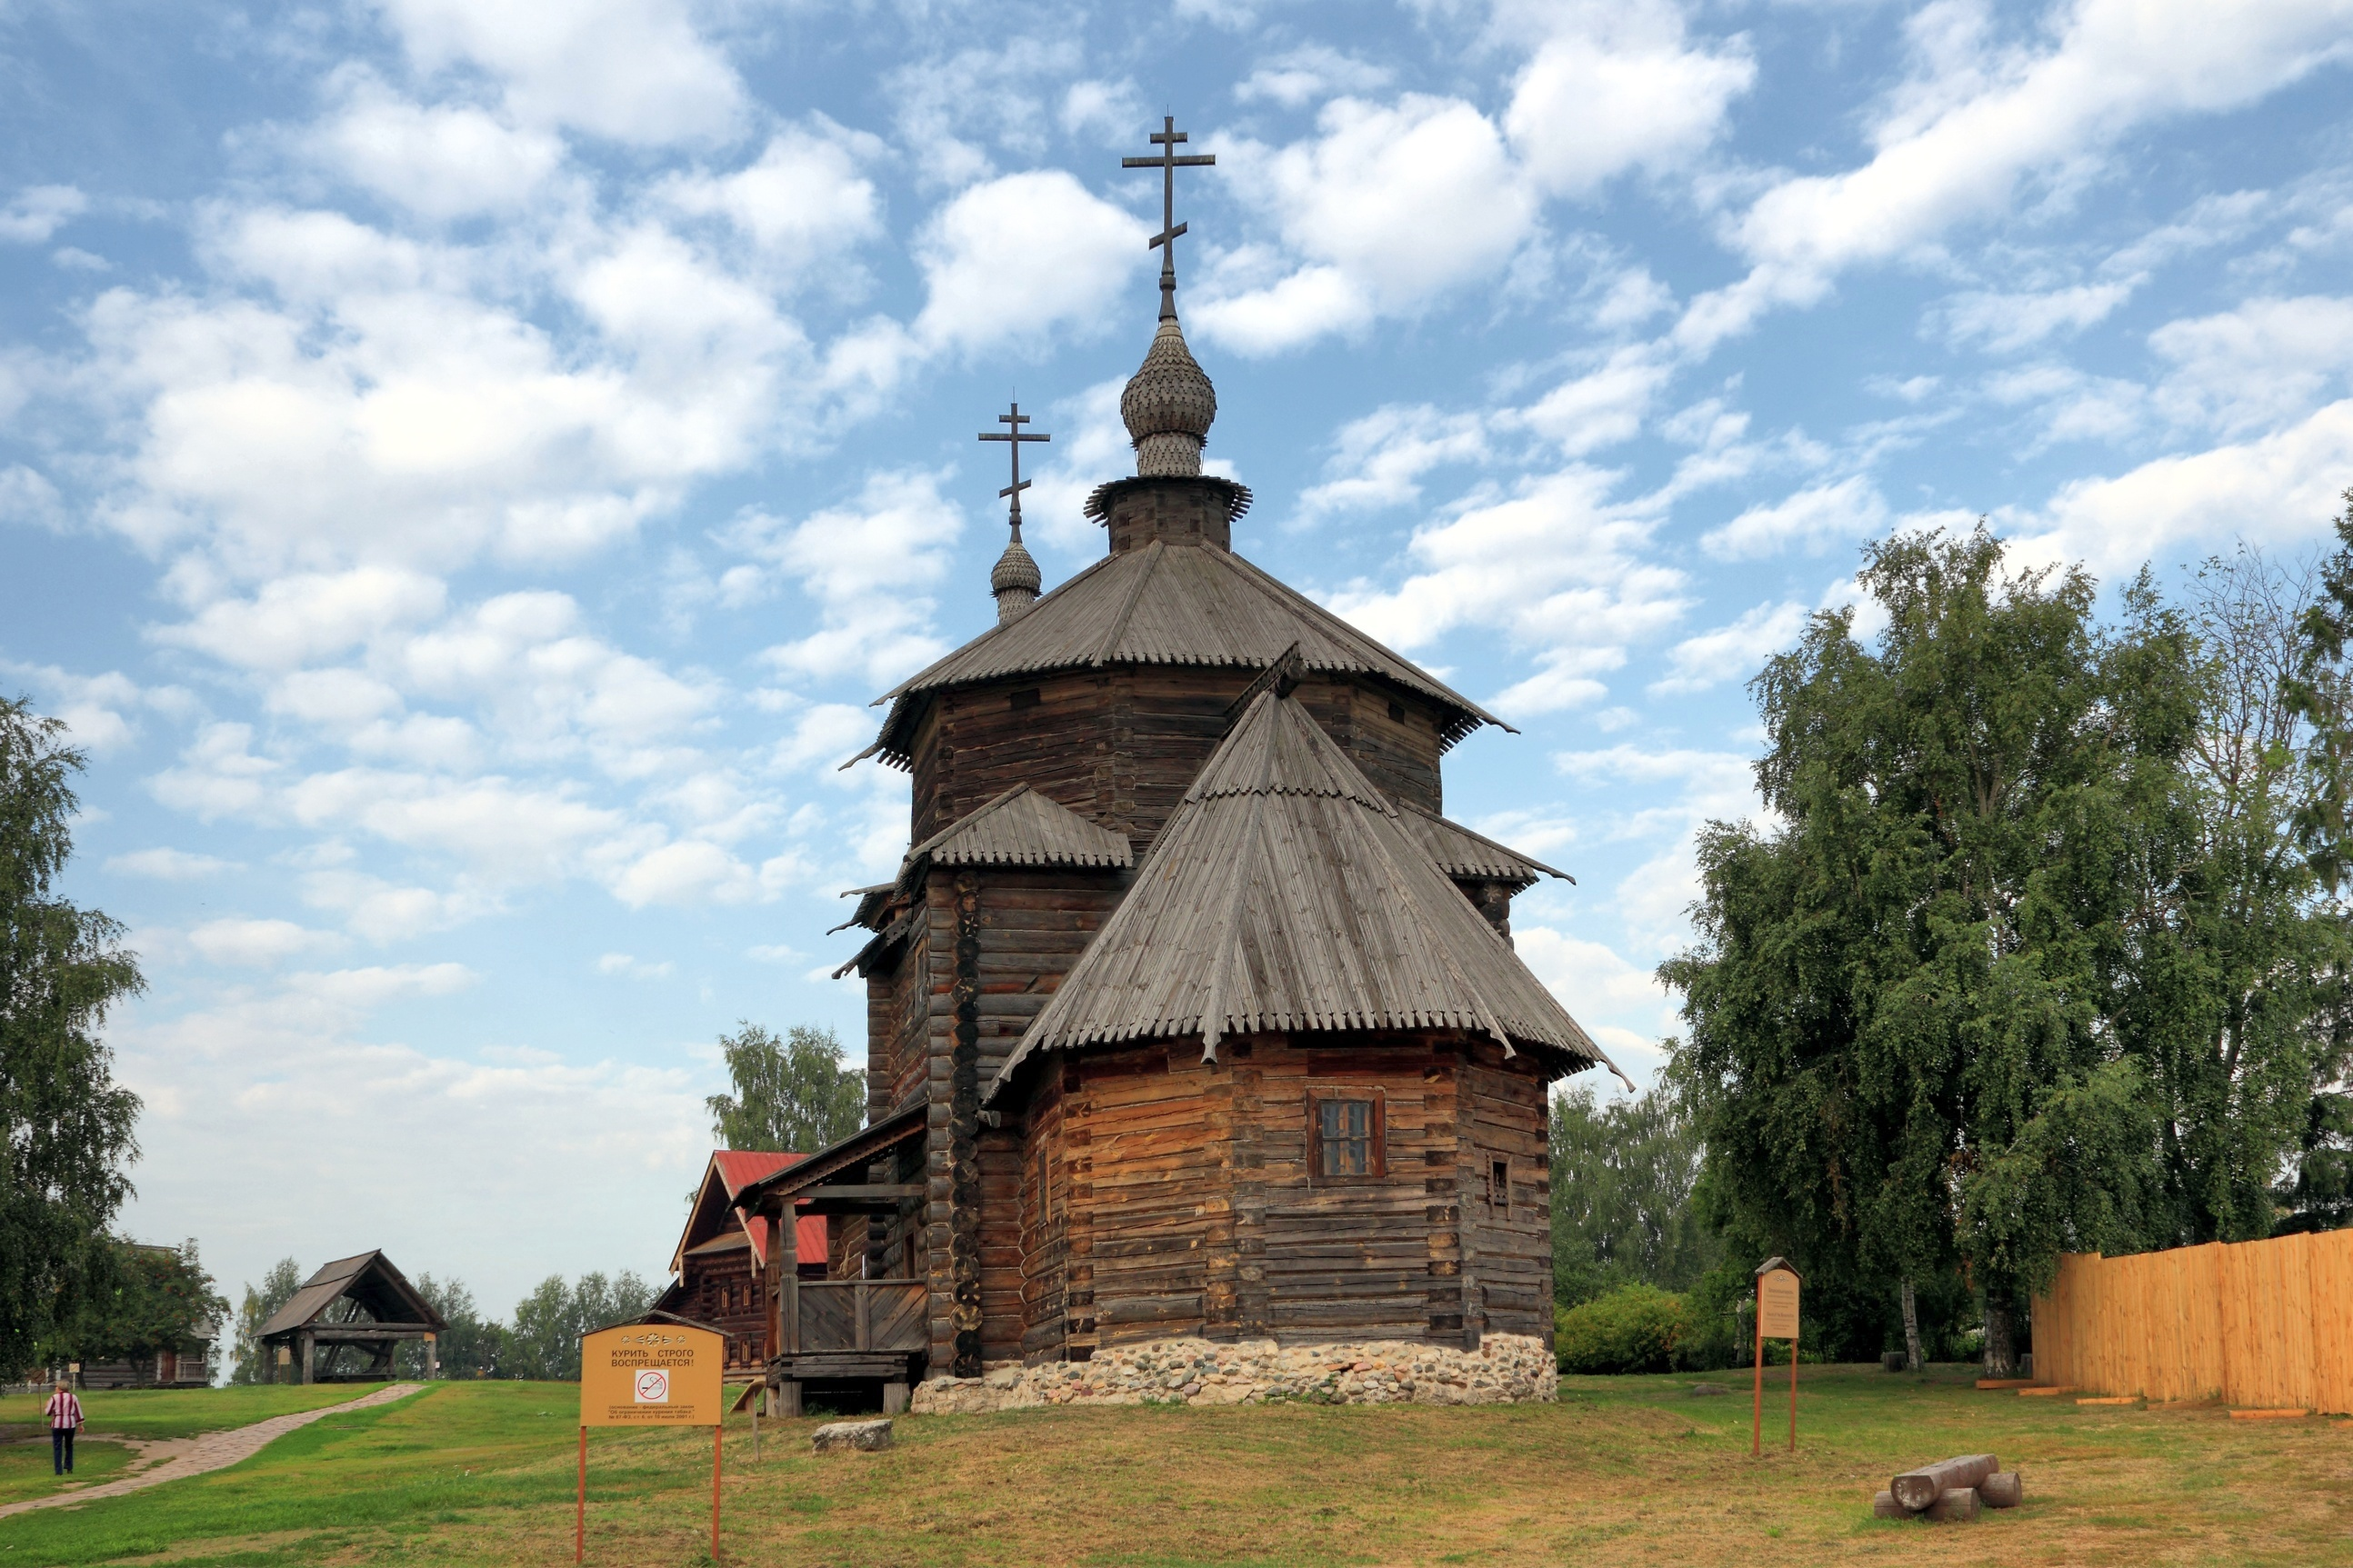 Suzdal - Museum of Wooden Architecture or the Ghost of the Dmitrievsky Pechora Monastery 64